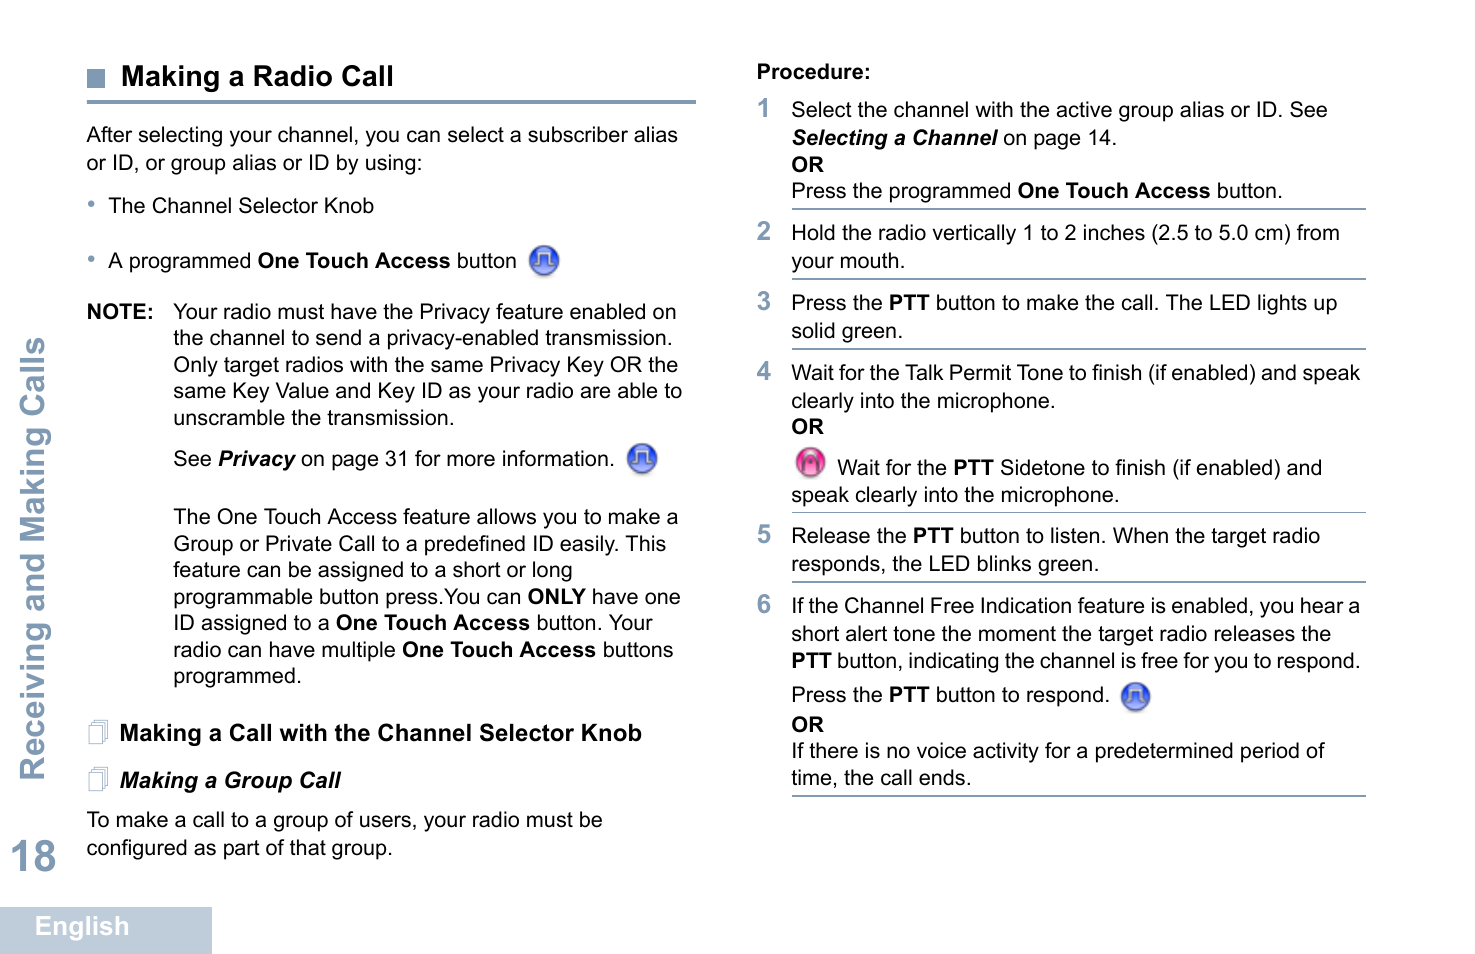 Making a radio call, Making a call with the channel selector